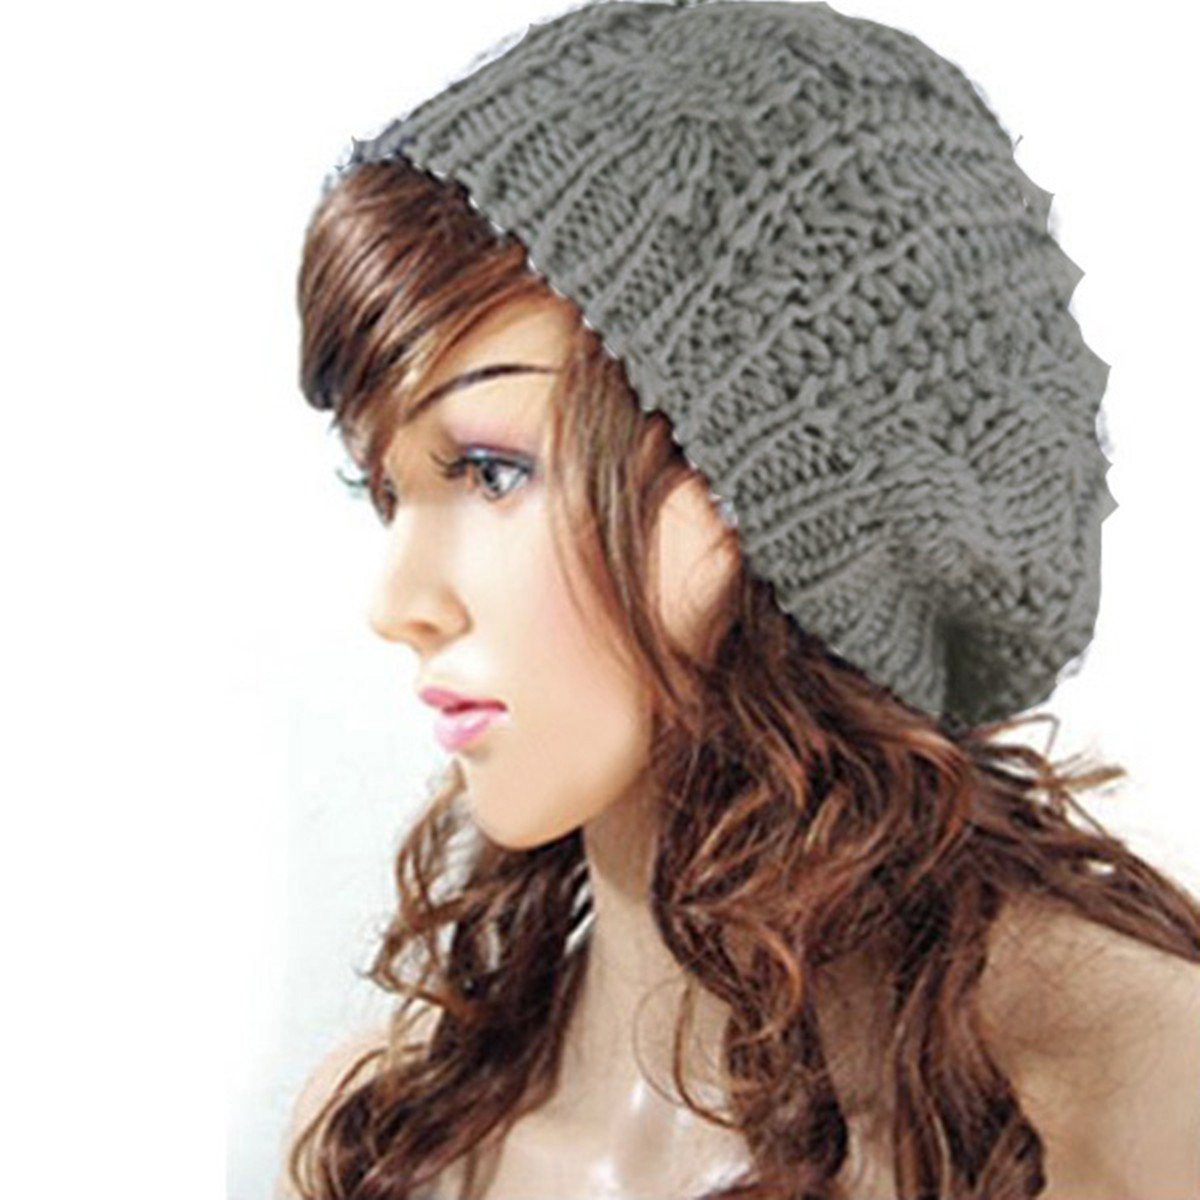 2019 NEW Women Baggy Beret Chunky Knit Braided Beanie Hat Cap Light ... 6ee697d1733